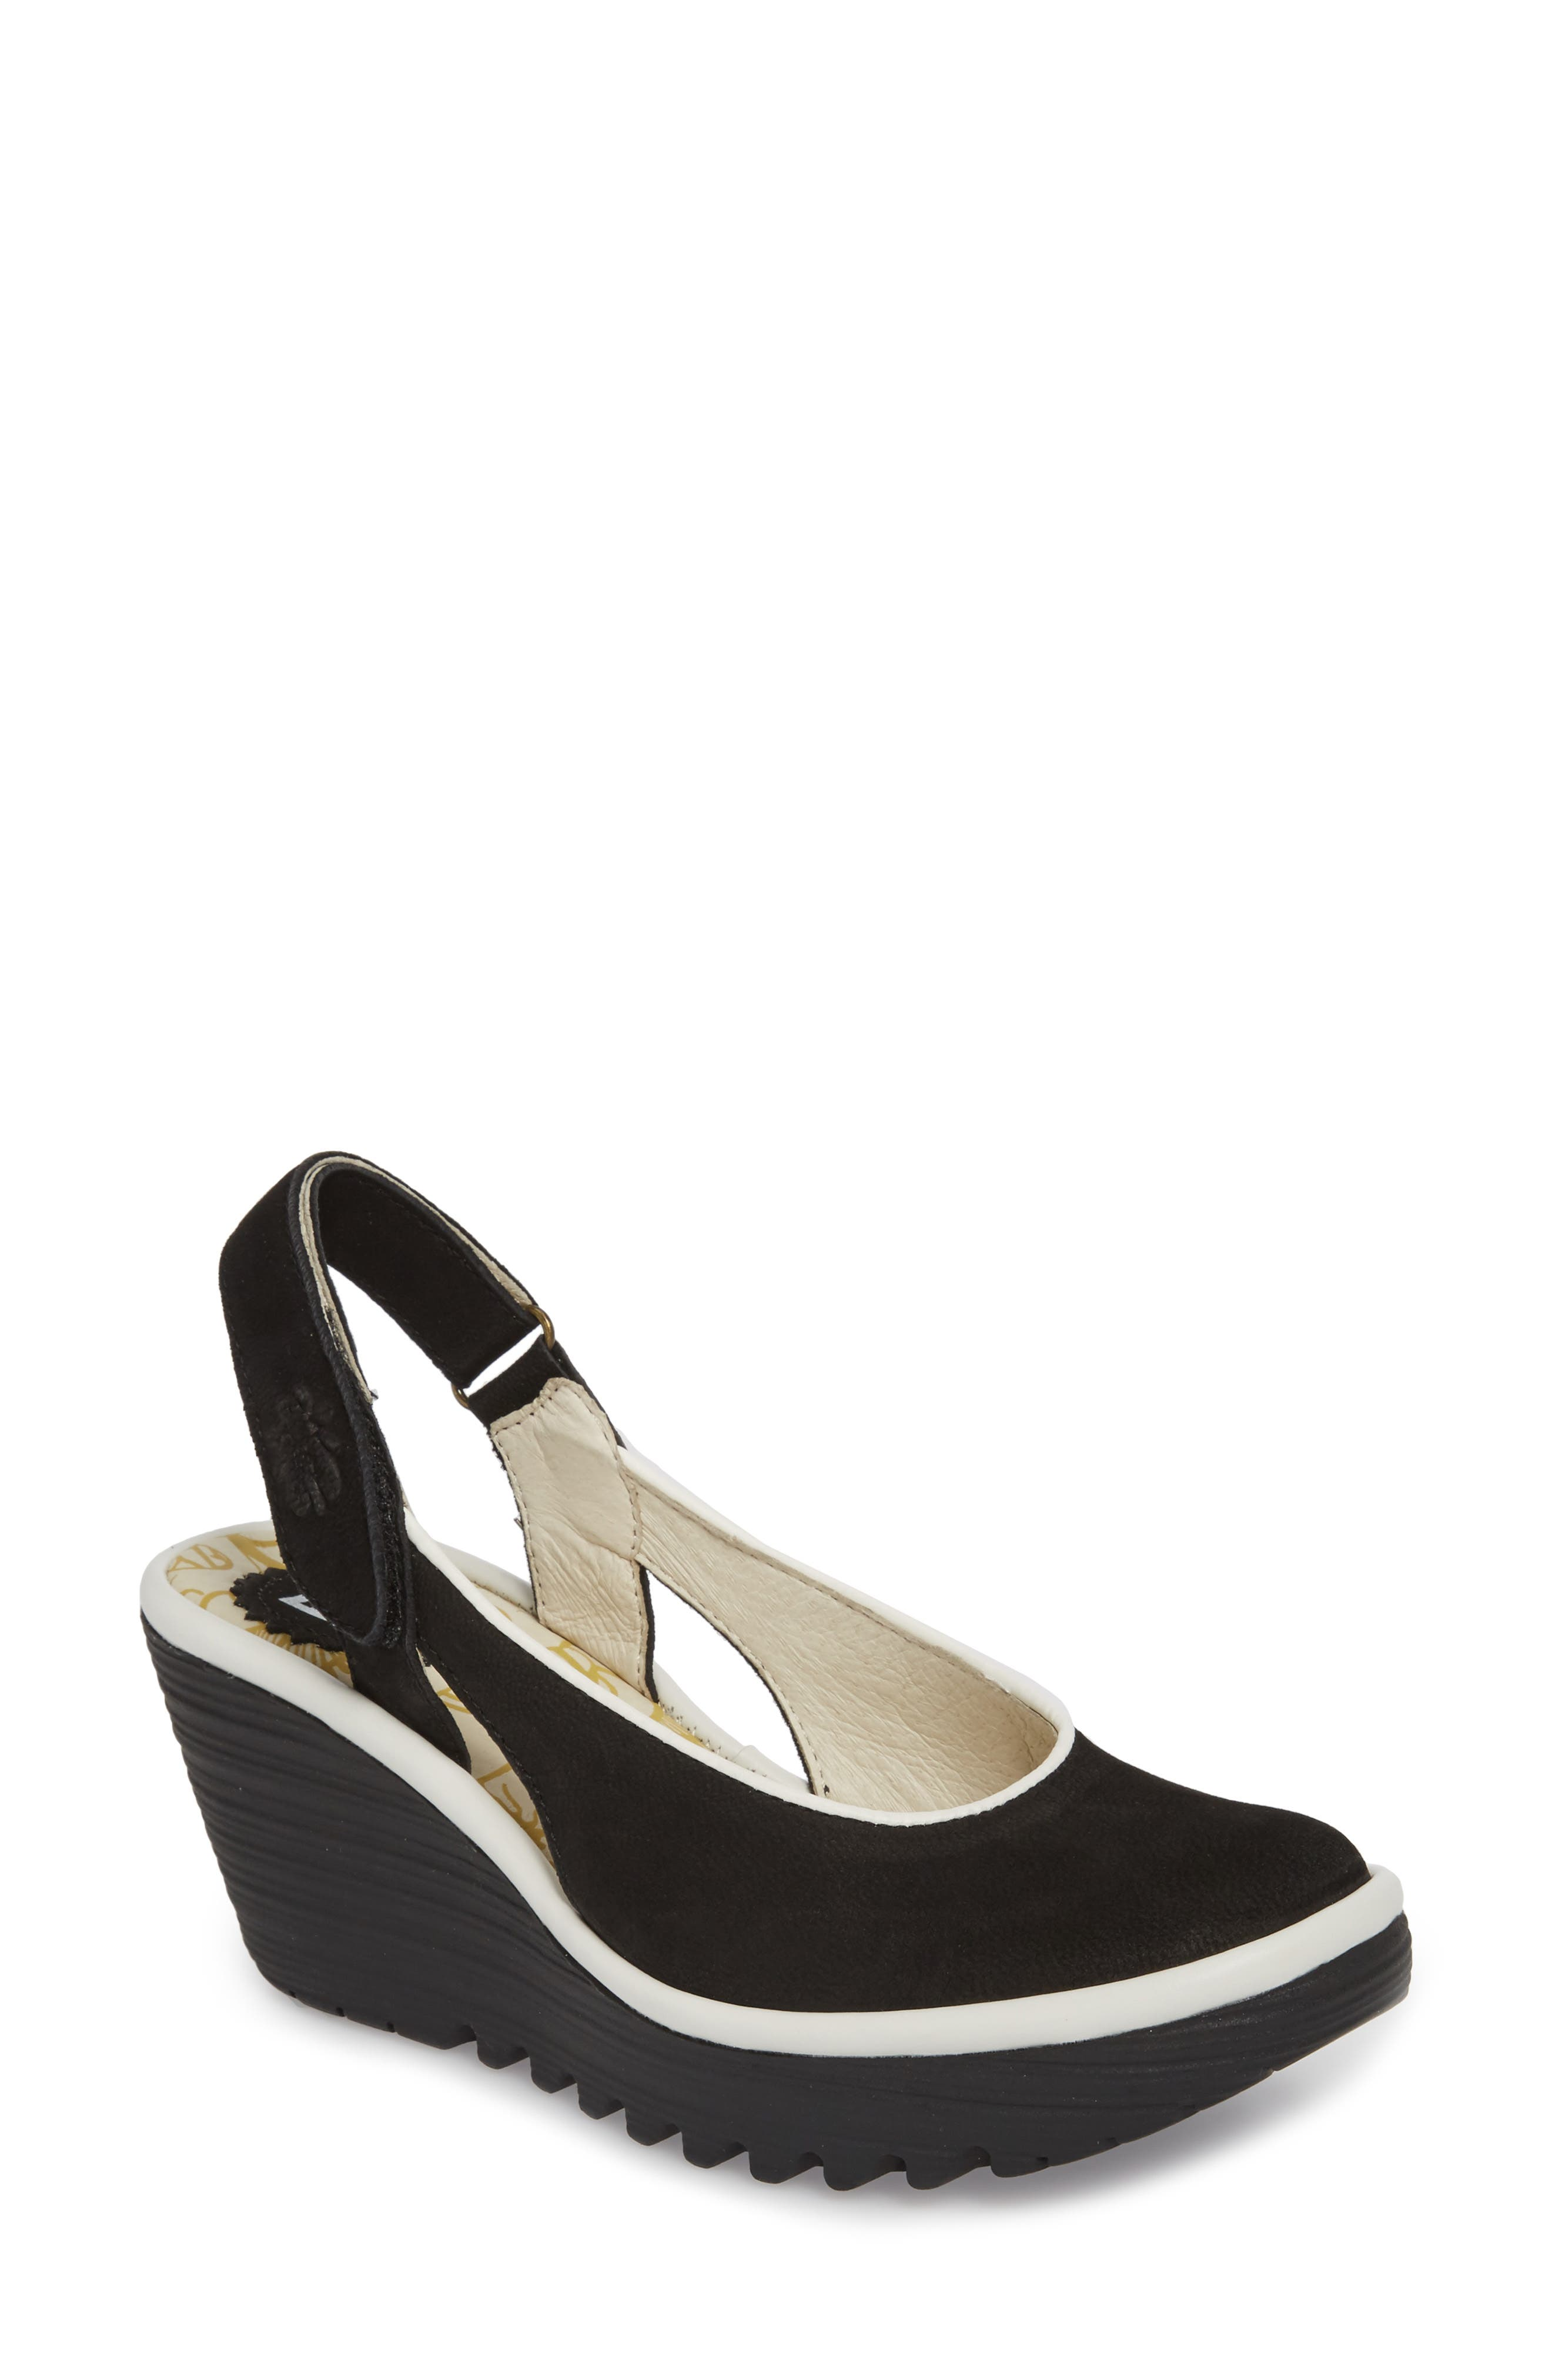 Yipi Wedge Sandal,                             Main thumbnail 1, color,                             BLACK/ OFF WHITE MIX LEATHER